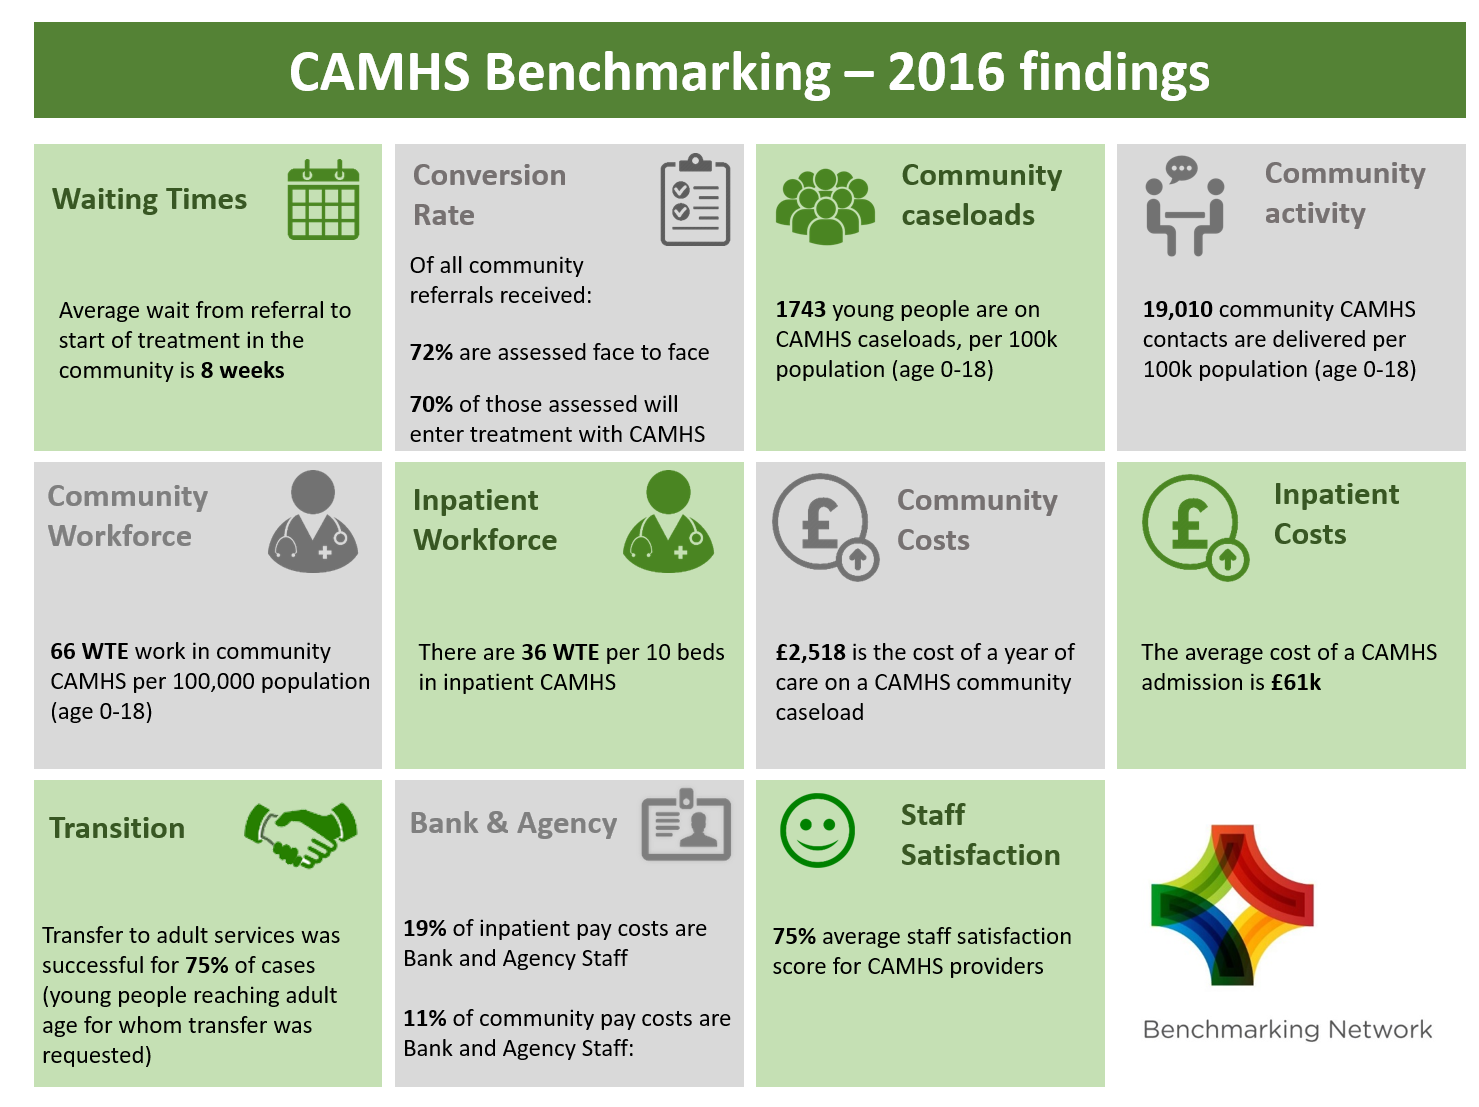 CAMHS Benchmarking Findings